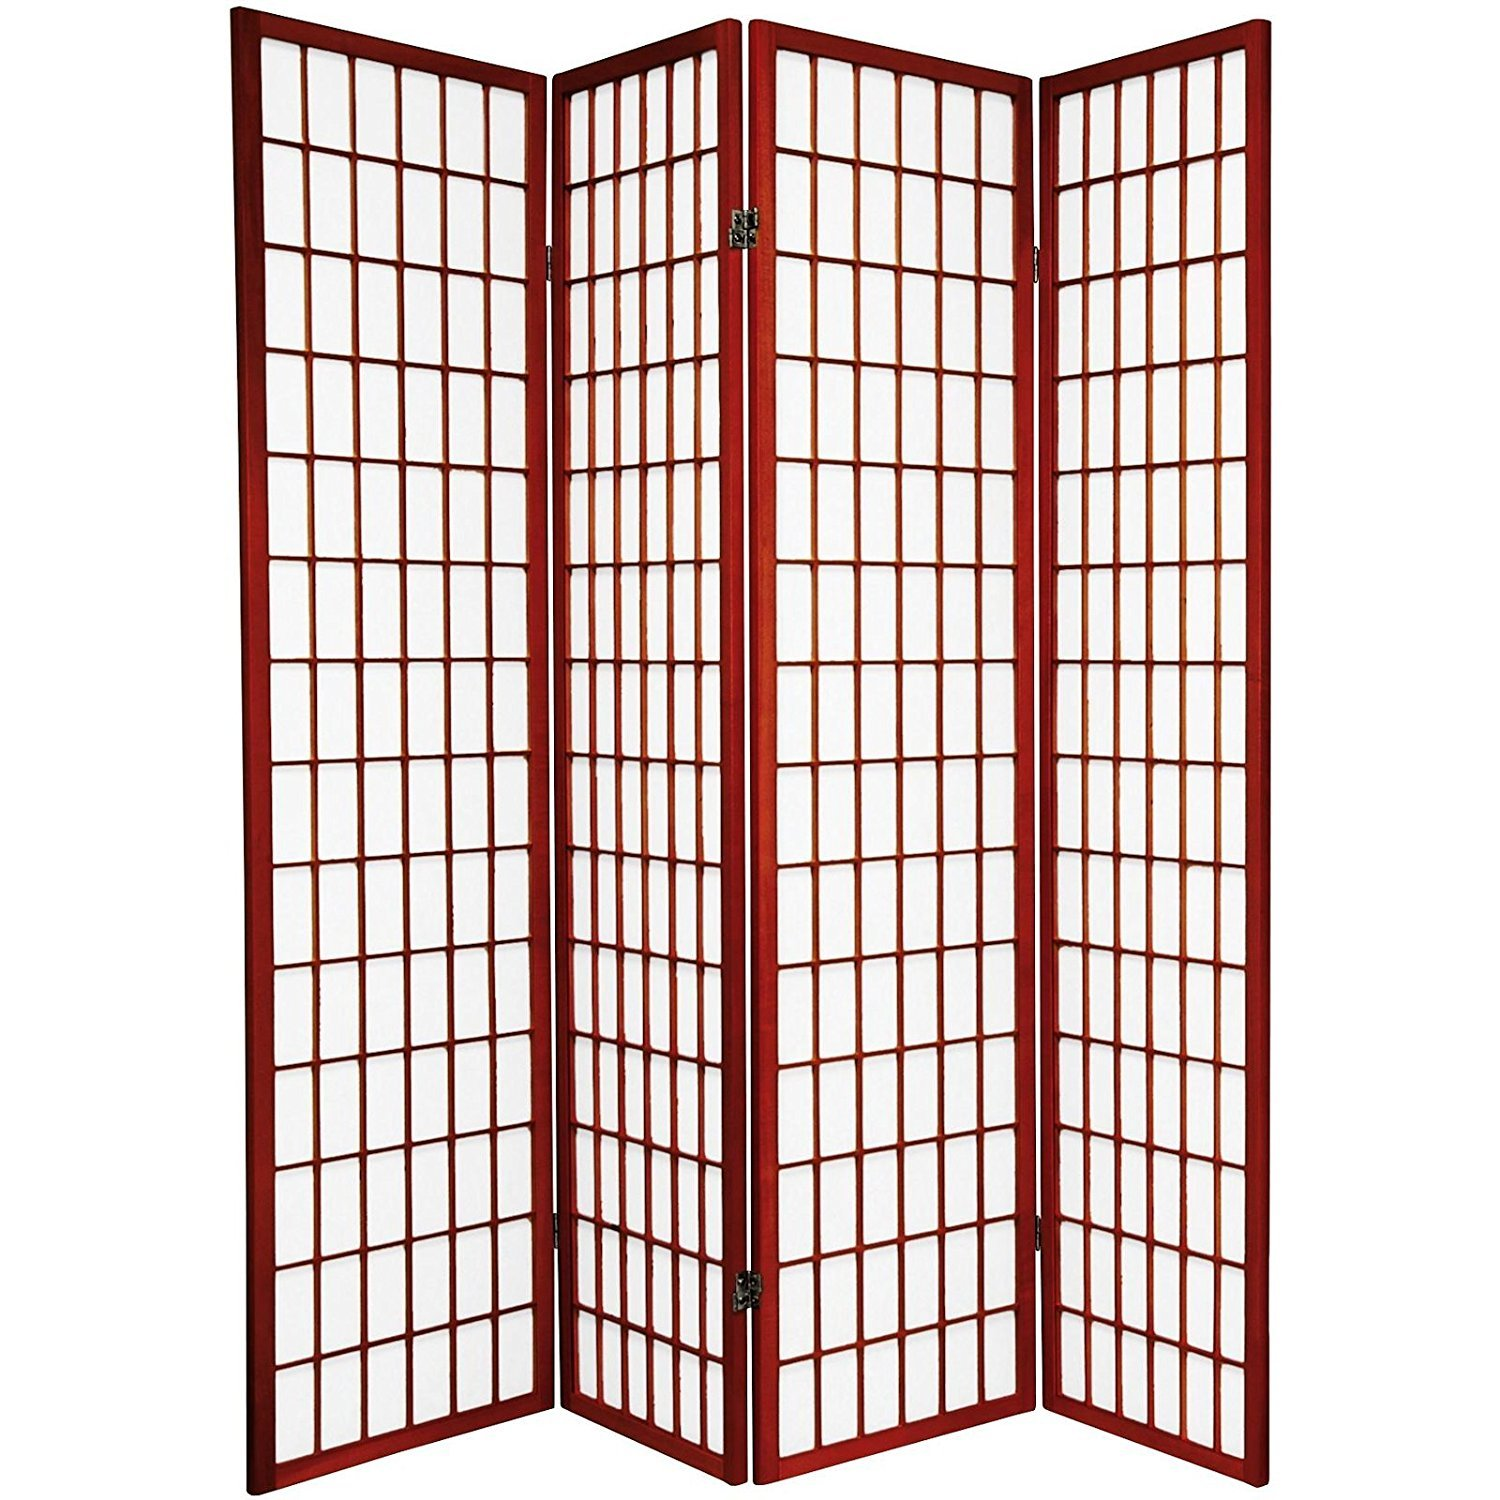 ORE International 4-Panel Room Divider, Cherry by ORE